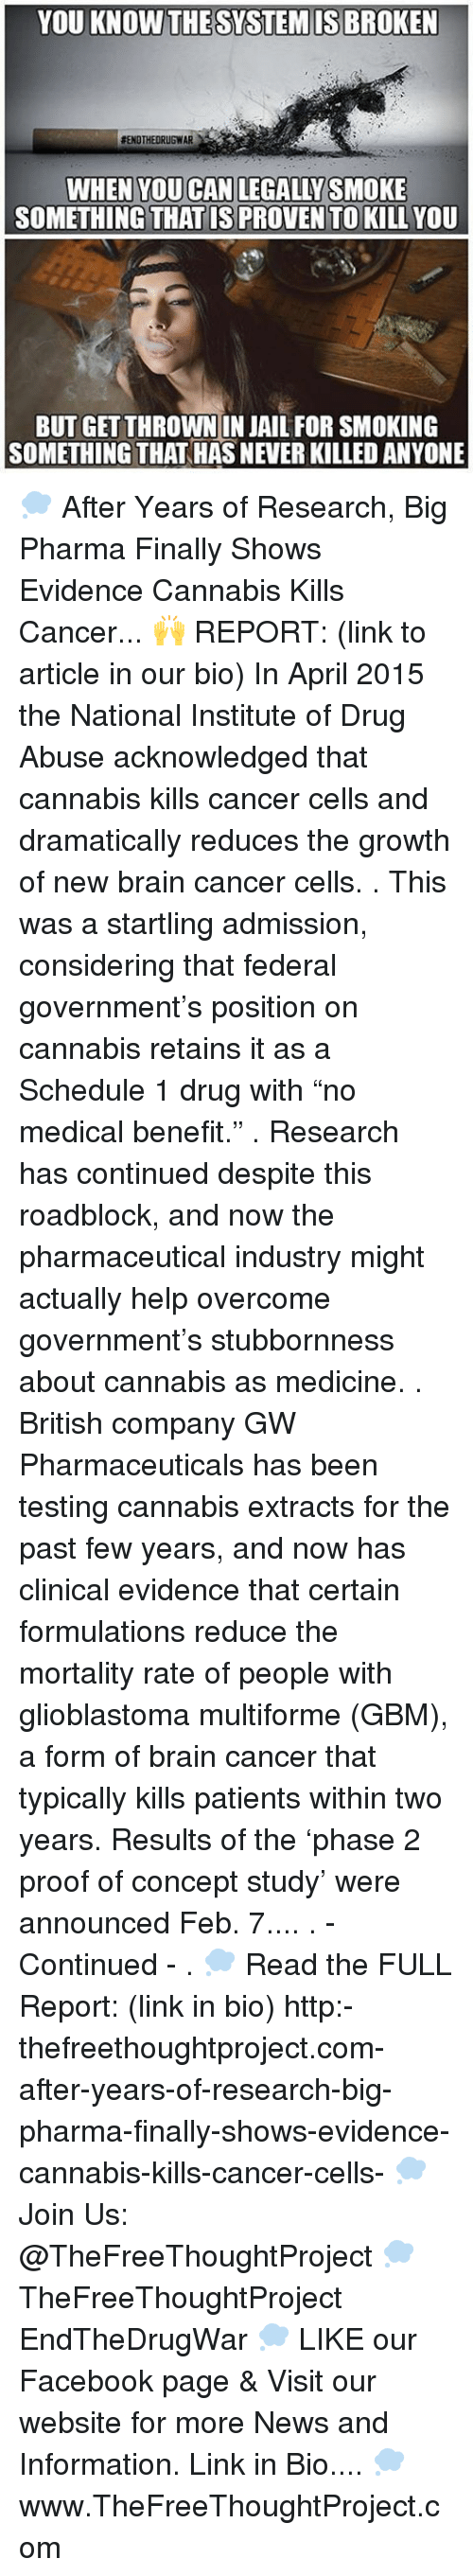 """Overcomed: YOU KNOW THESYSTEMISBROKEN  EENDTHEORUGWAR  WHEN YOU CAN LEGAL YSMOKE  SOMETHING THAT IS PROVENTO KILLYOU  BUT GET THROWN IN JAIL FOR SMOKING  SOMETHING THAT HASNEVERKILLED ANYONE 💭 After Years of Research, Big Pharma Finally Shows Evidence Cannabis Kills Cancer... 🙌 REPORT: (link to article in our bio) In April 2015 the National Institute of Drug Abuse acknowledged that cannabis kills cancer cells and dramatically reduces the growth of new brain cancer cells. . This was a startling admission, considering that federal government's position on cannabis retains it as a Schedule 1 drug with """"no medical benefit."""" . Research has continued despite this roadblock, and now the pharmaceutical industry might actually help overcome government's stubbornness about cannabis as medicine. . British company GW Pharmaceuticals has been testing cannabis extracts for the past few years, and now has clinical evidence that certain formulations reduce the mortality rate of people with glioblastoma multiforme (GBM), a form of brain cancer that typically kills patients within two years. Results of the 'phase 2 proof of concept study' were announced Feb. 7.... . - Continued - . 💭 Read the FULL Report: (link in bio) http:-thefreethoughtproject.com-after-years-of-research-big-pharma-finally-shows-evidence-cannabis-kills-cancer-cells- 💭 Join Us: @TheFreeThoughtProject 💭 TheFreeThoughtProject EndTheDrugWar 💭 LIKE our Facebook page & Visit our website for more News and Information. Link in Bio.... 💭 www.TheFreeThoughtProject.com"""